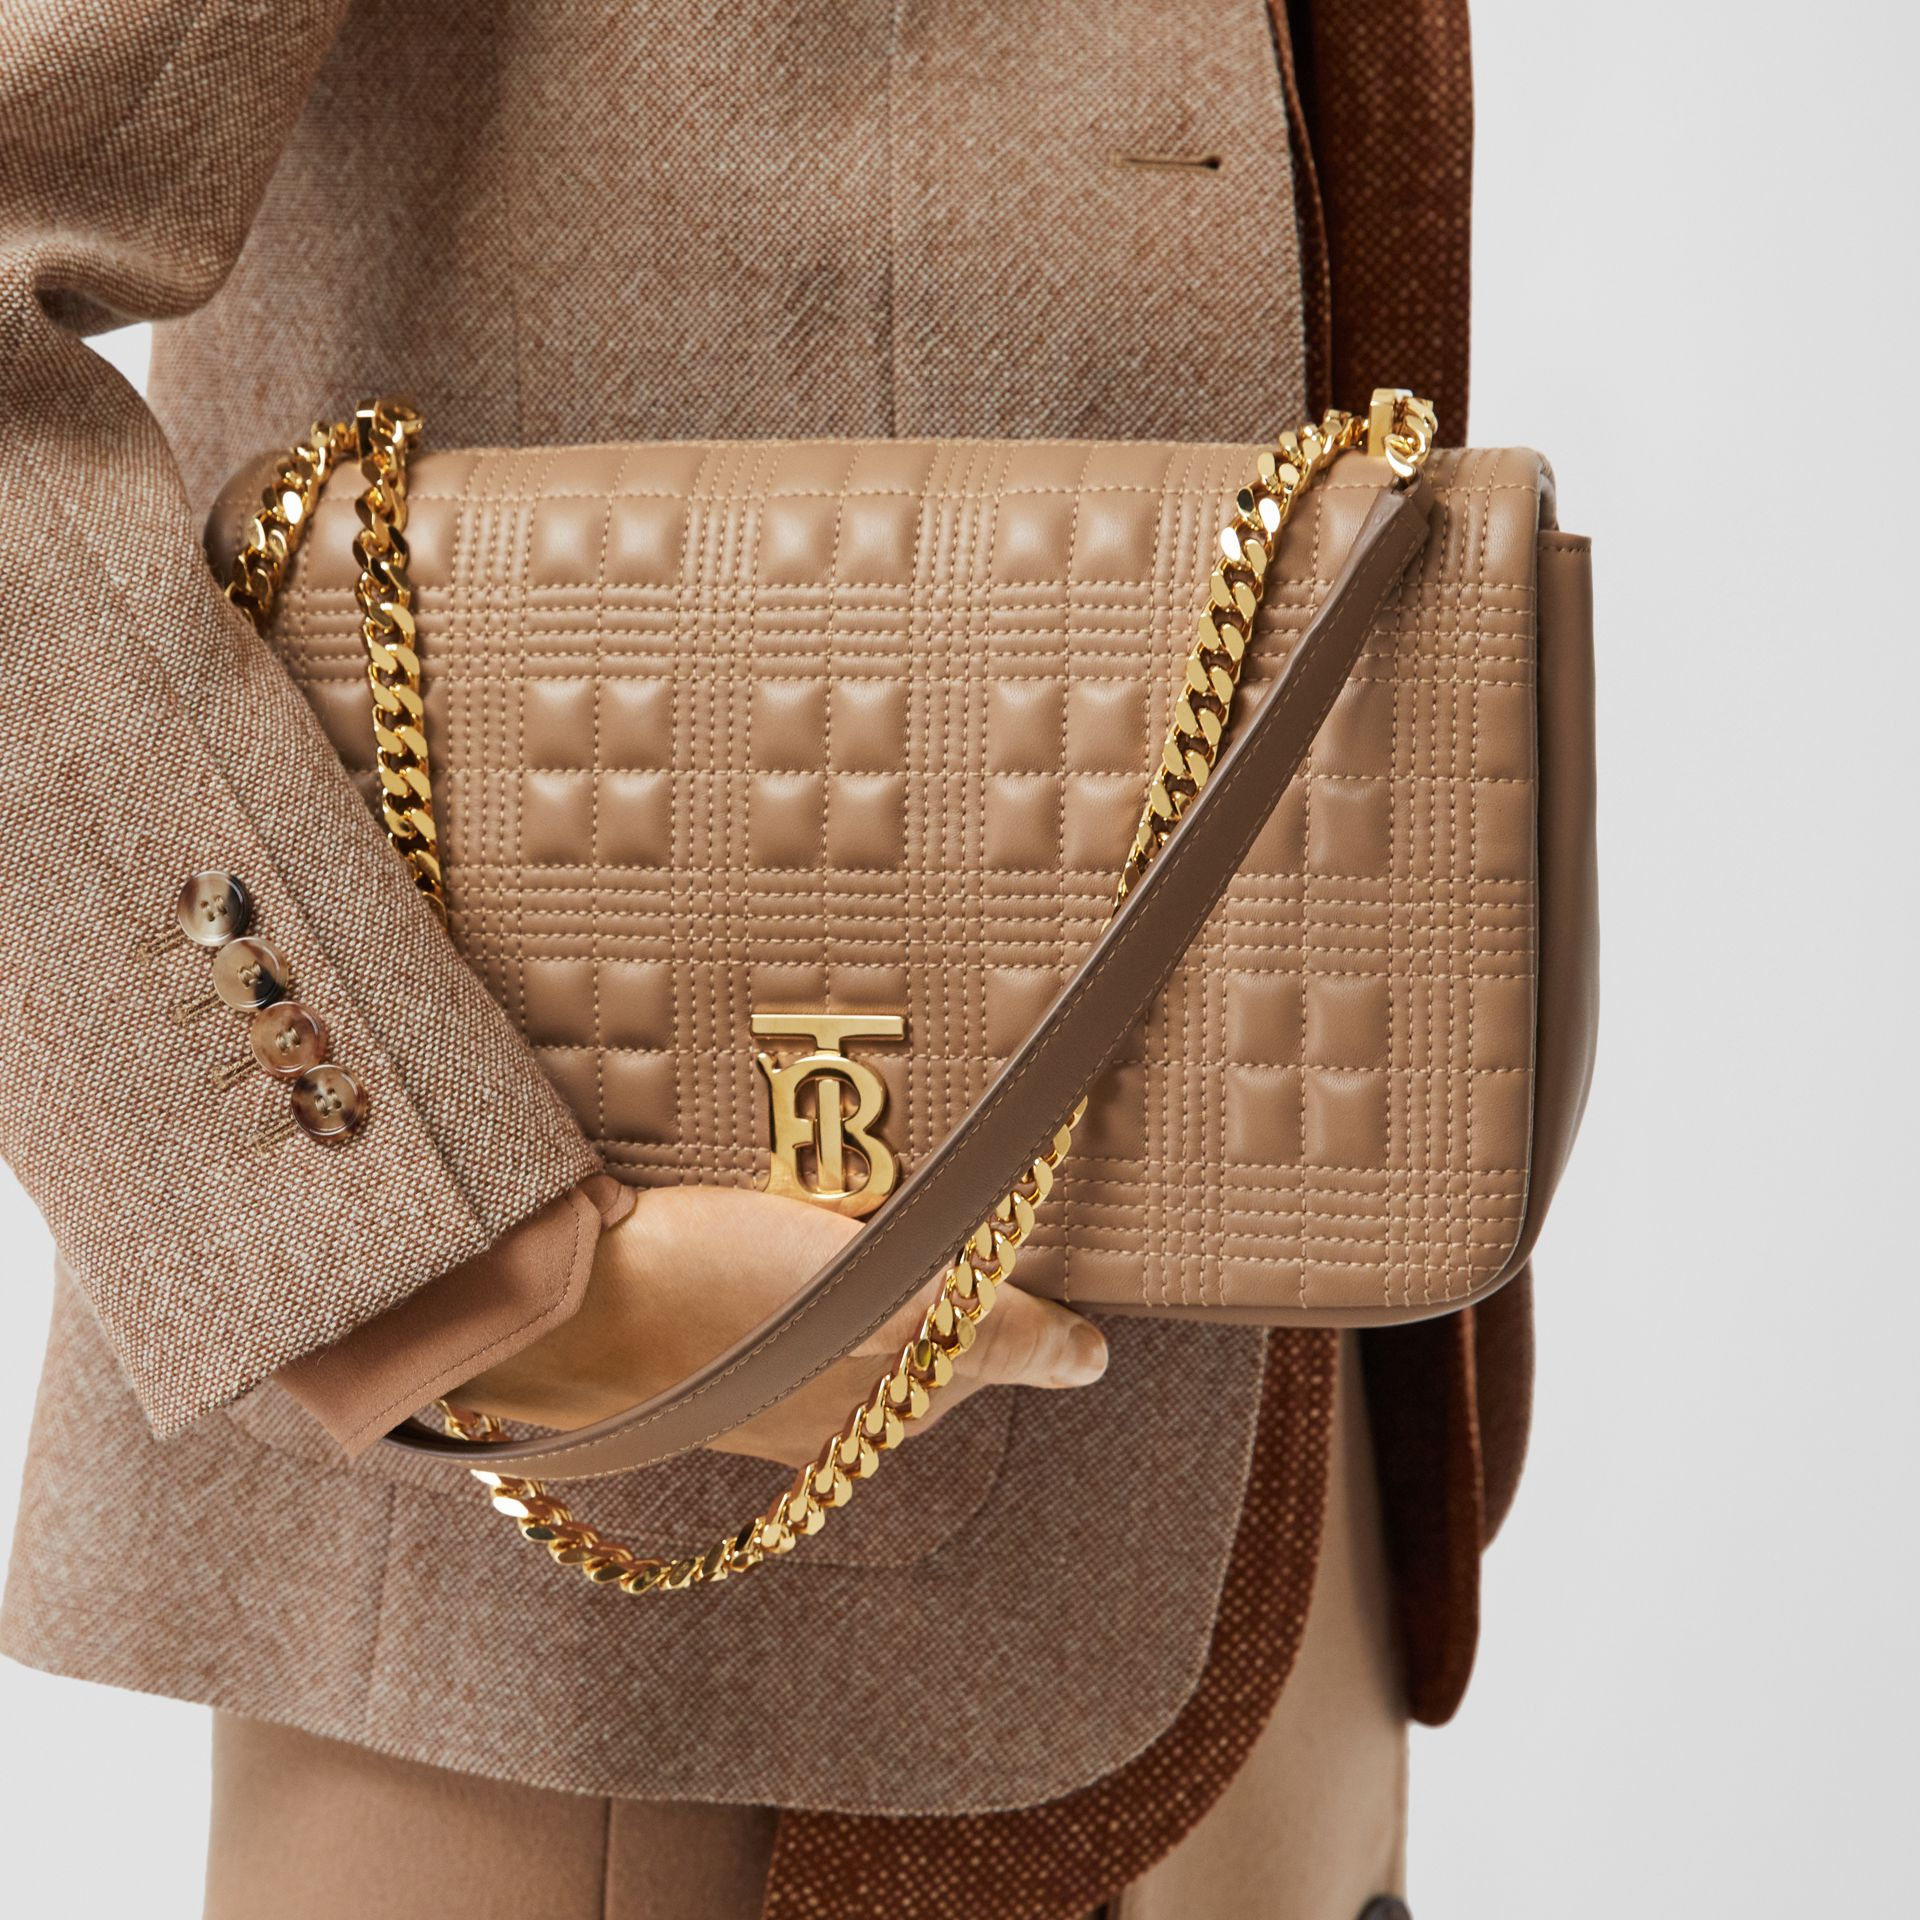 Medium Quilted Lambskin Lola Bag in Camel - Women | Burberry United Kingdom - gallery image 8